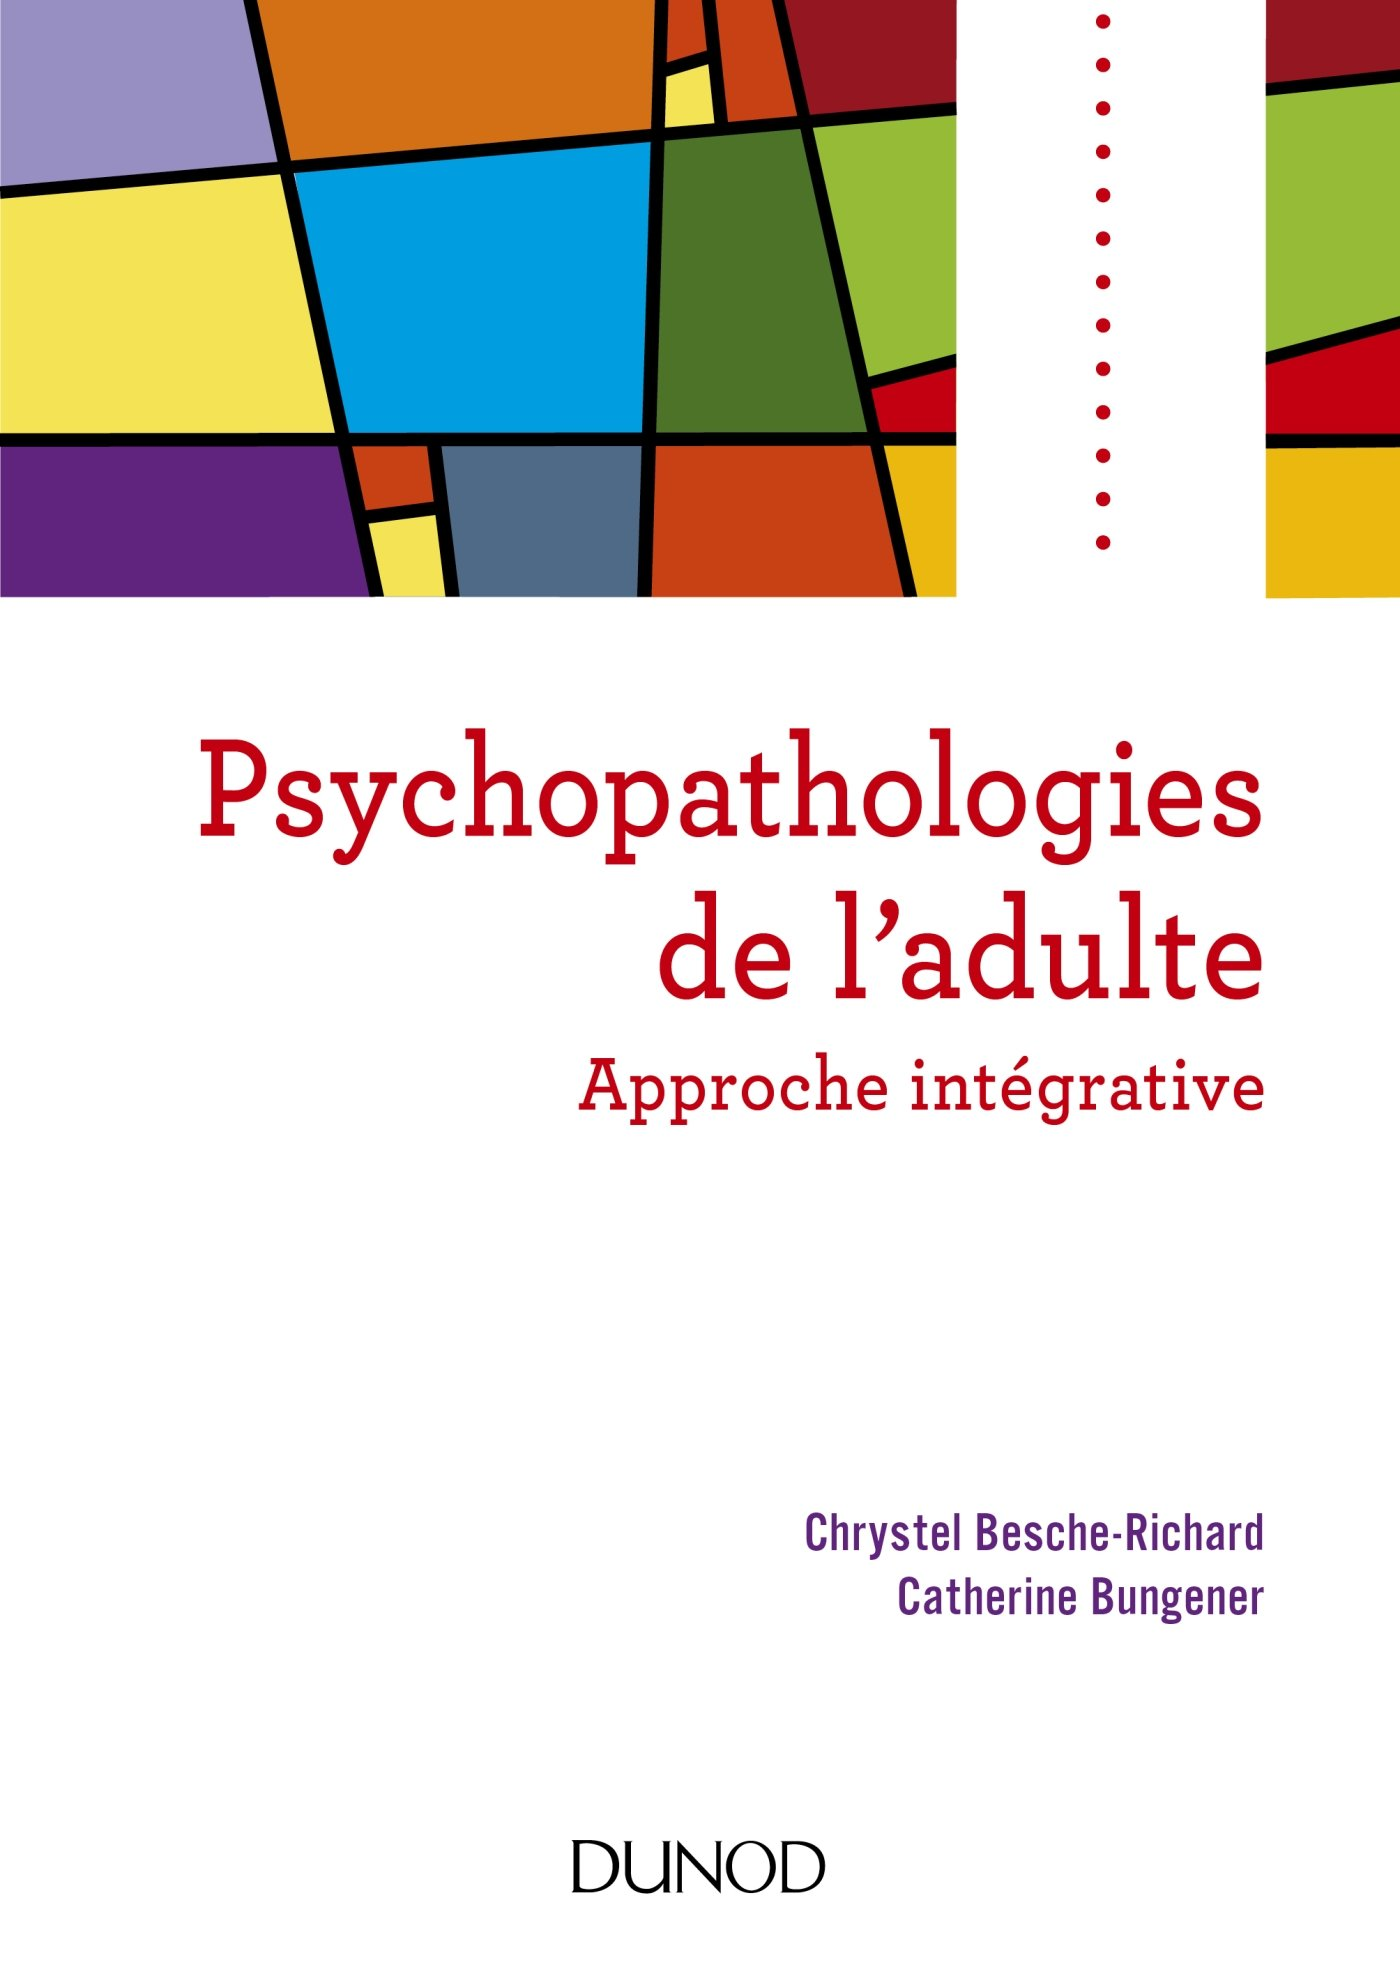 Amazon.fr - Psychopathologies de l'adulte - Approche intégrative - Chrystel  Besche-Richard, Catherine Bungener - Livres